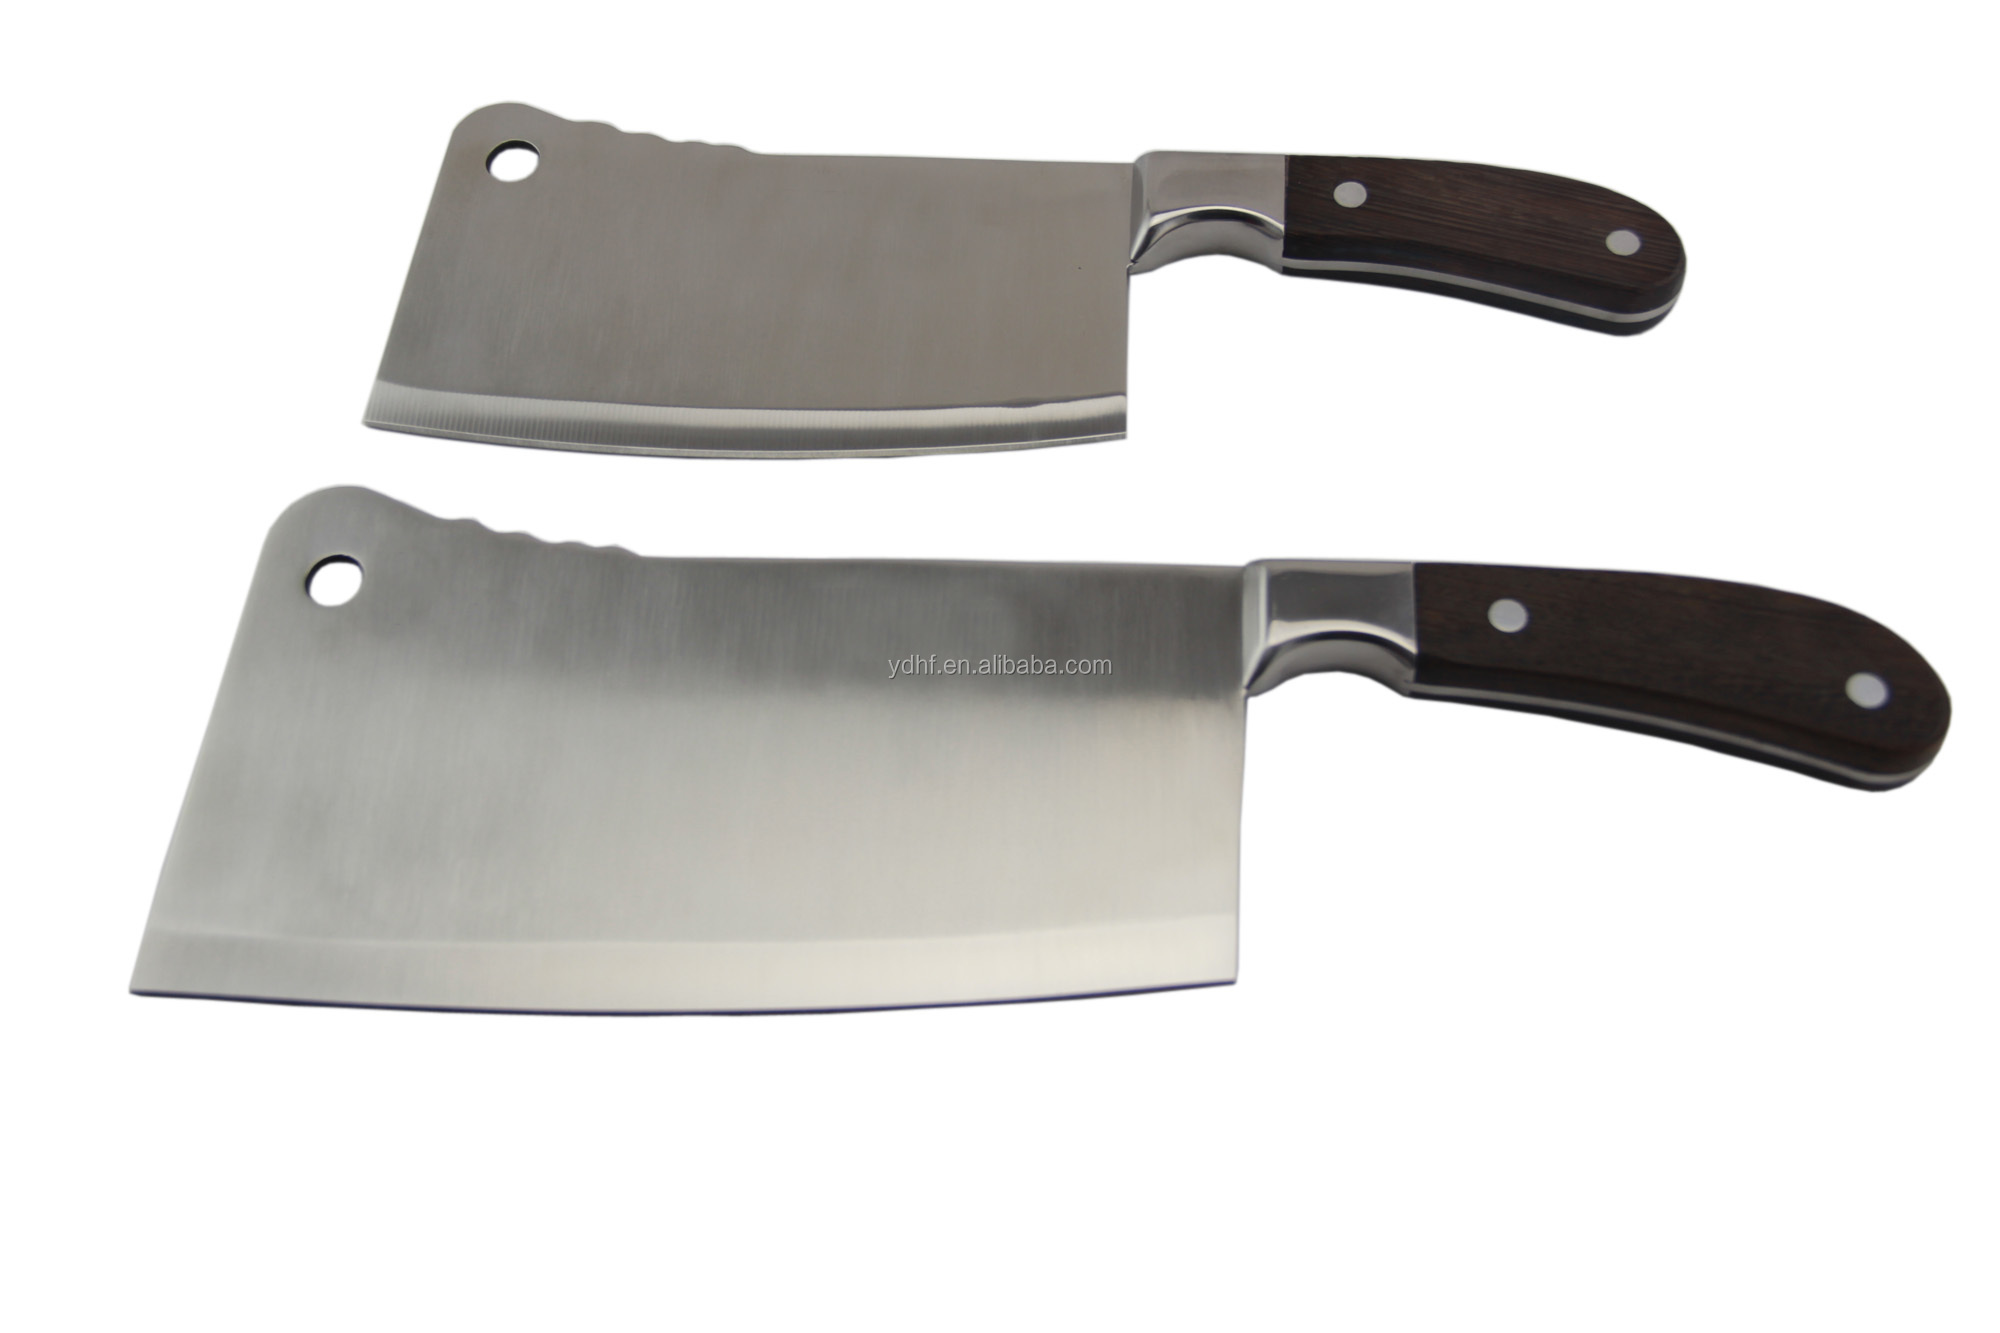 Chopping Knife Set Wooden Handle Chopper Knife Chinese Knife Set Butcher